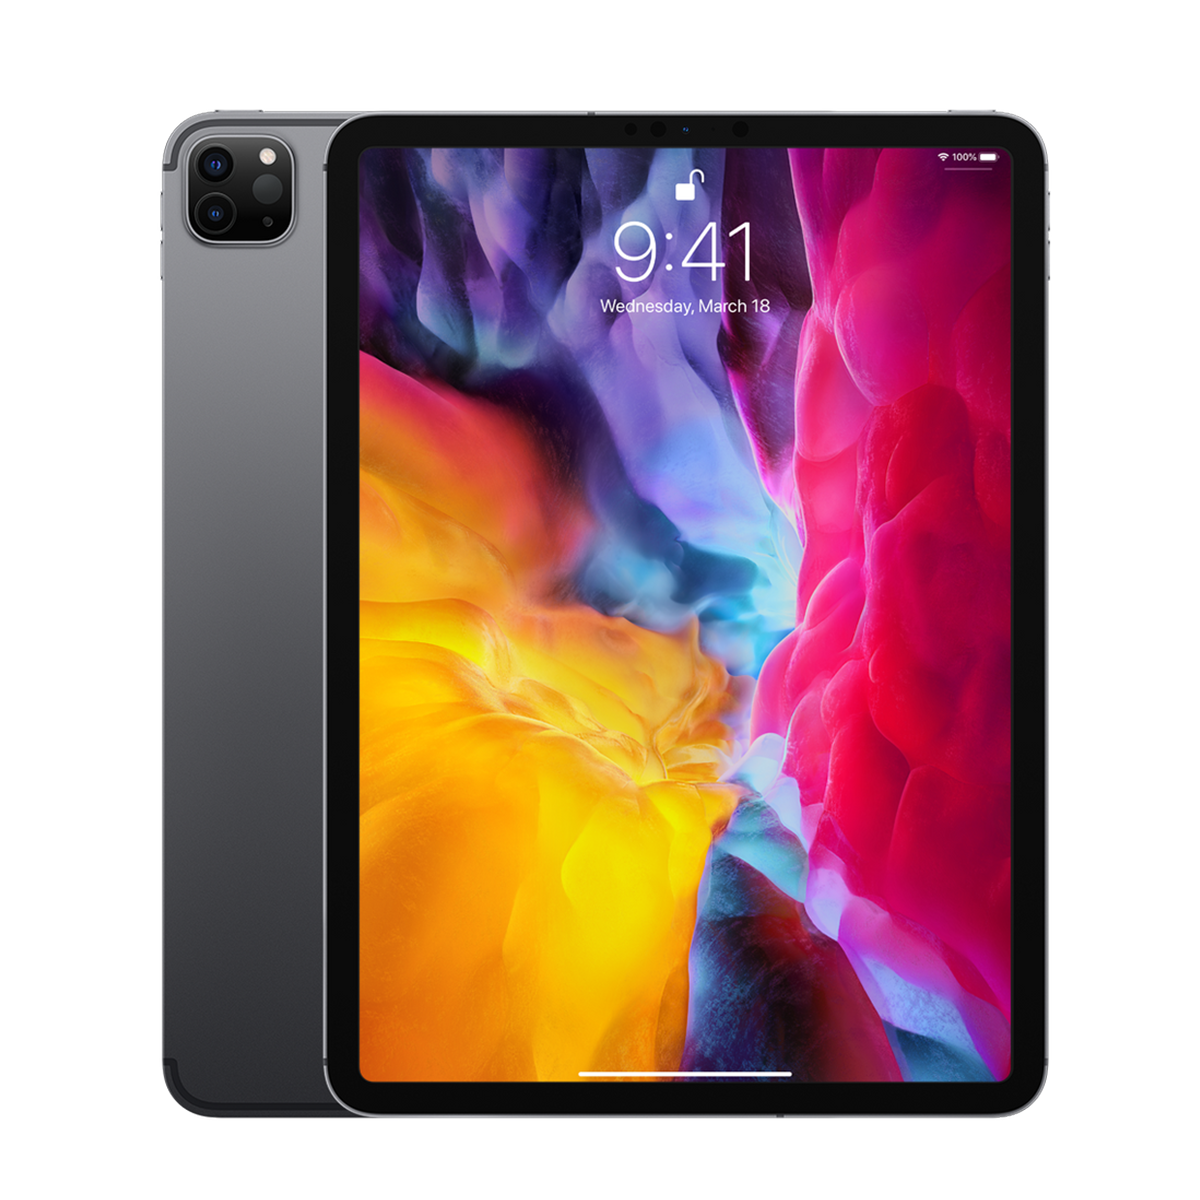 iPad Pro 11-inch (2nd Generation) Space Gray 256GB